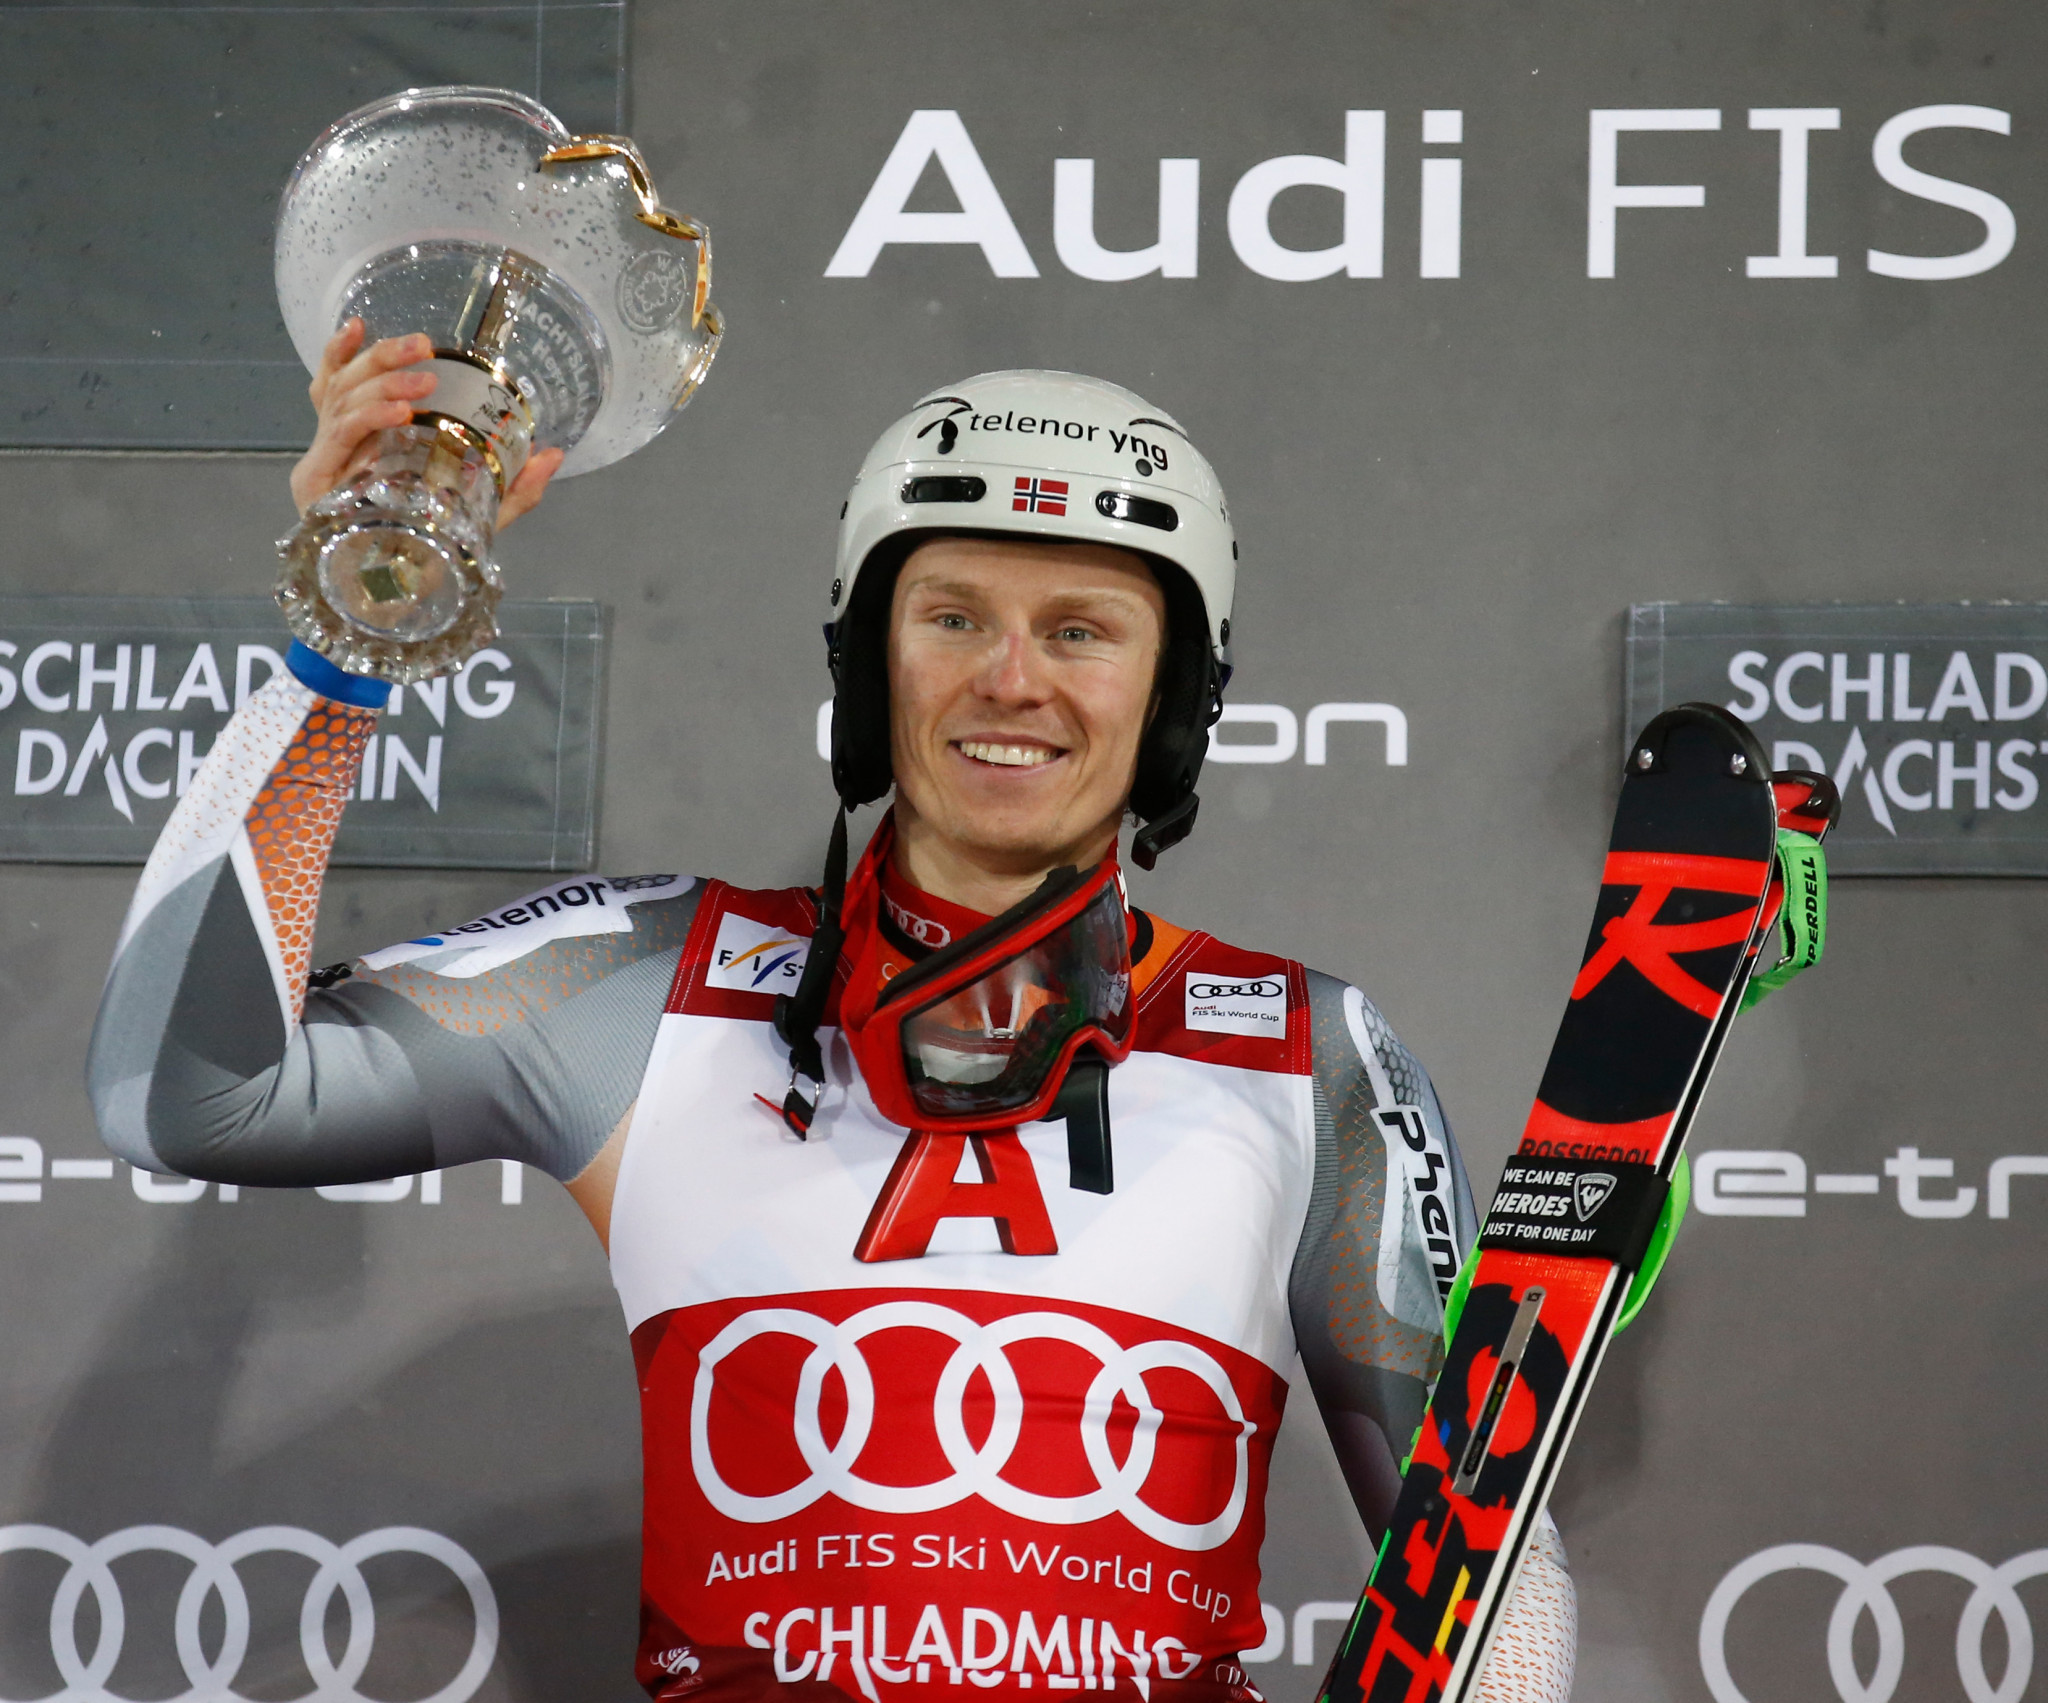 Kristoffersen extends lead in FIS Alpine Ski World Cup standings with slalom win in Schladming